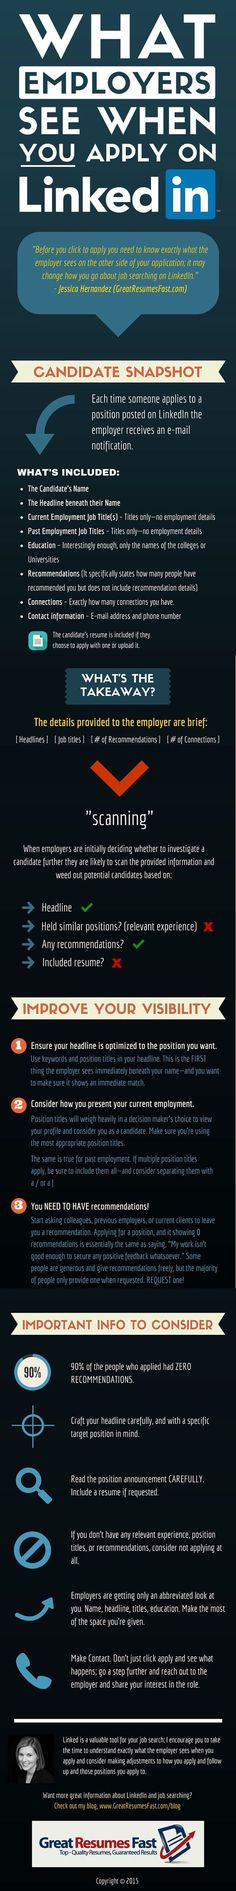 What Employers See When You Apply On LinkedIn | Great Resumes Fast |  Jessica Holbrook Hernandez  Great Resumes Fast